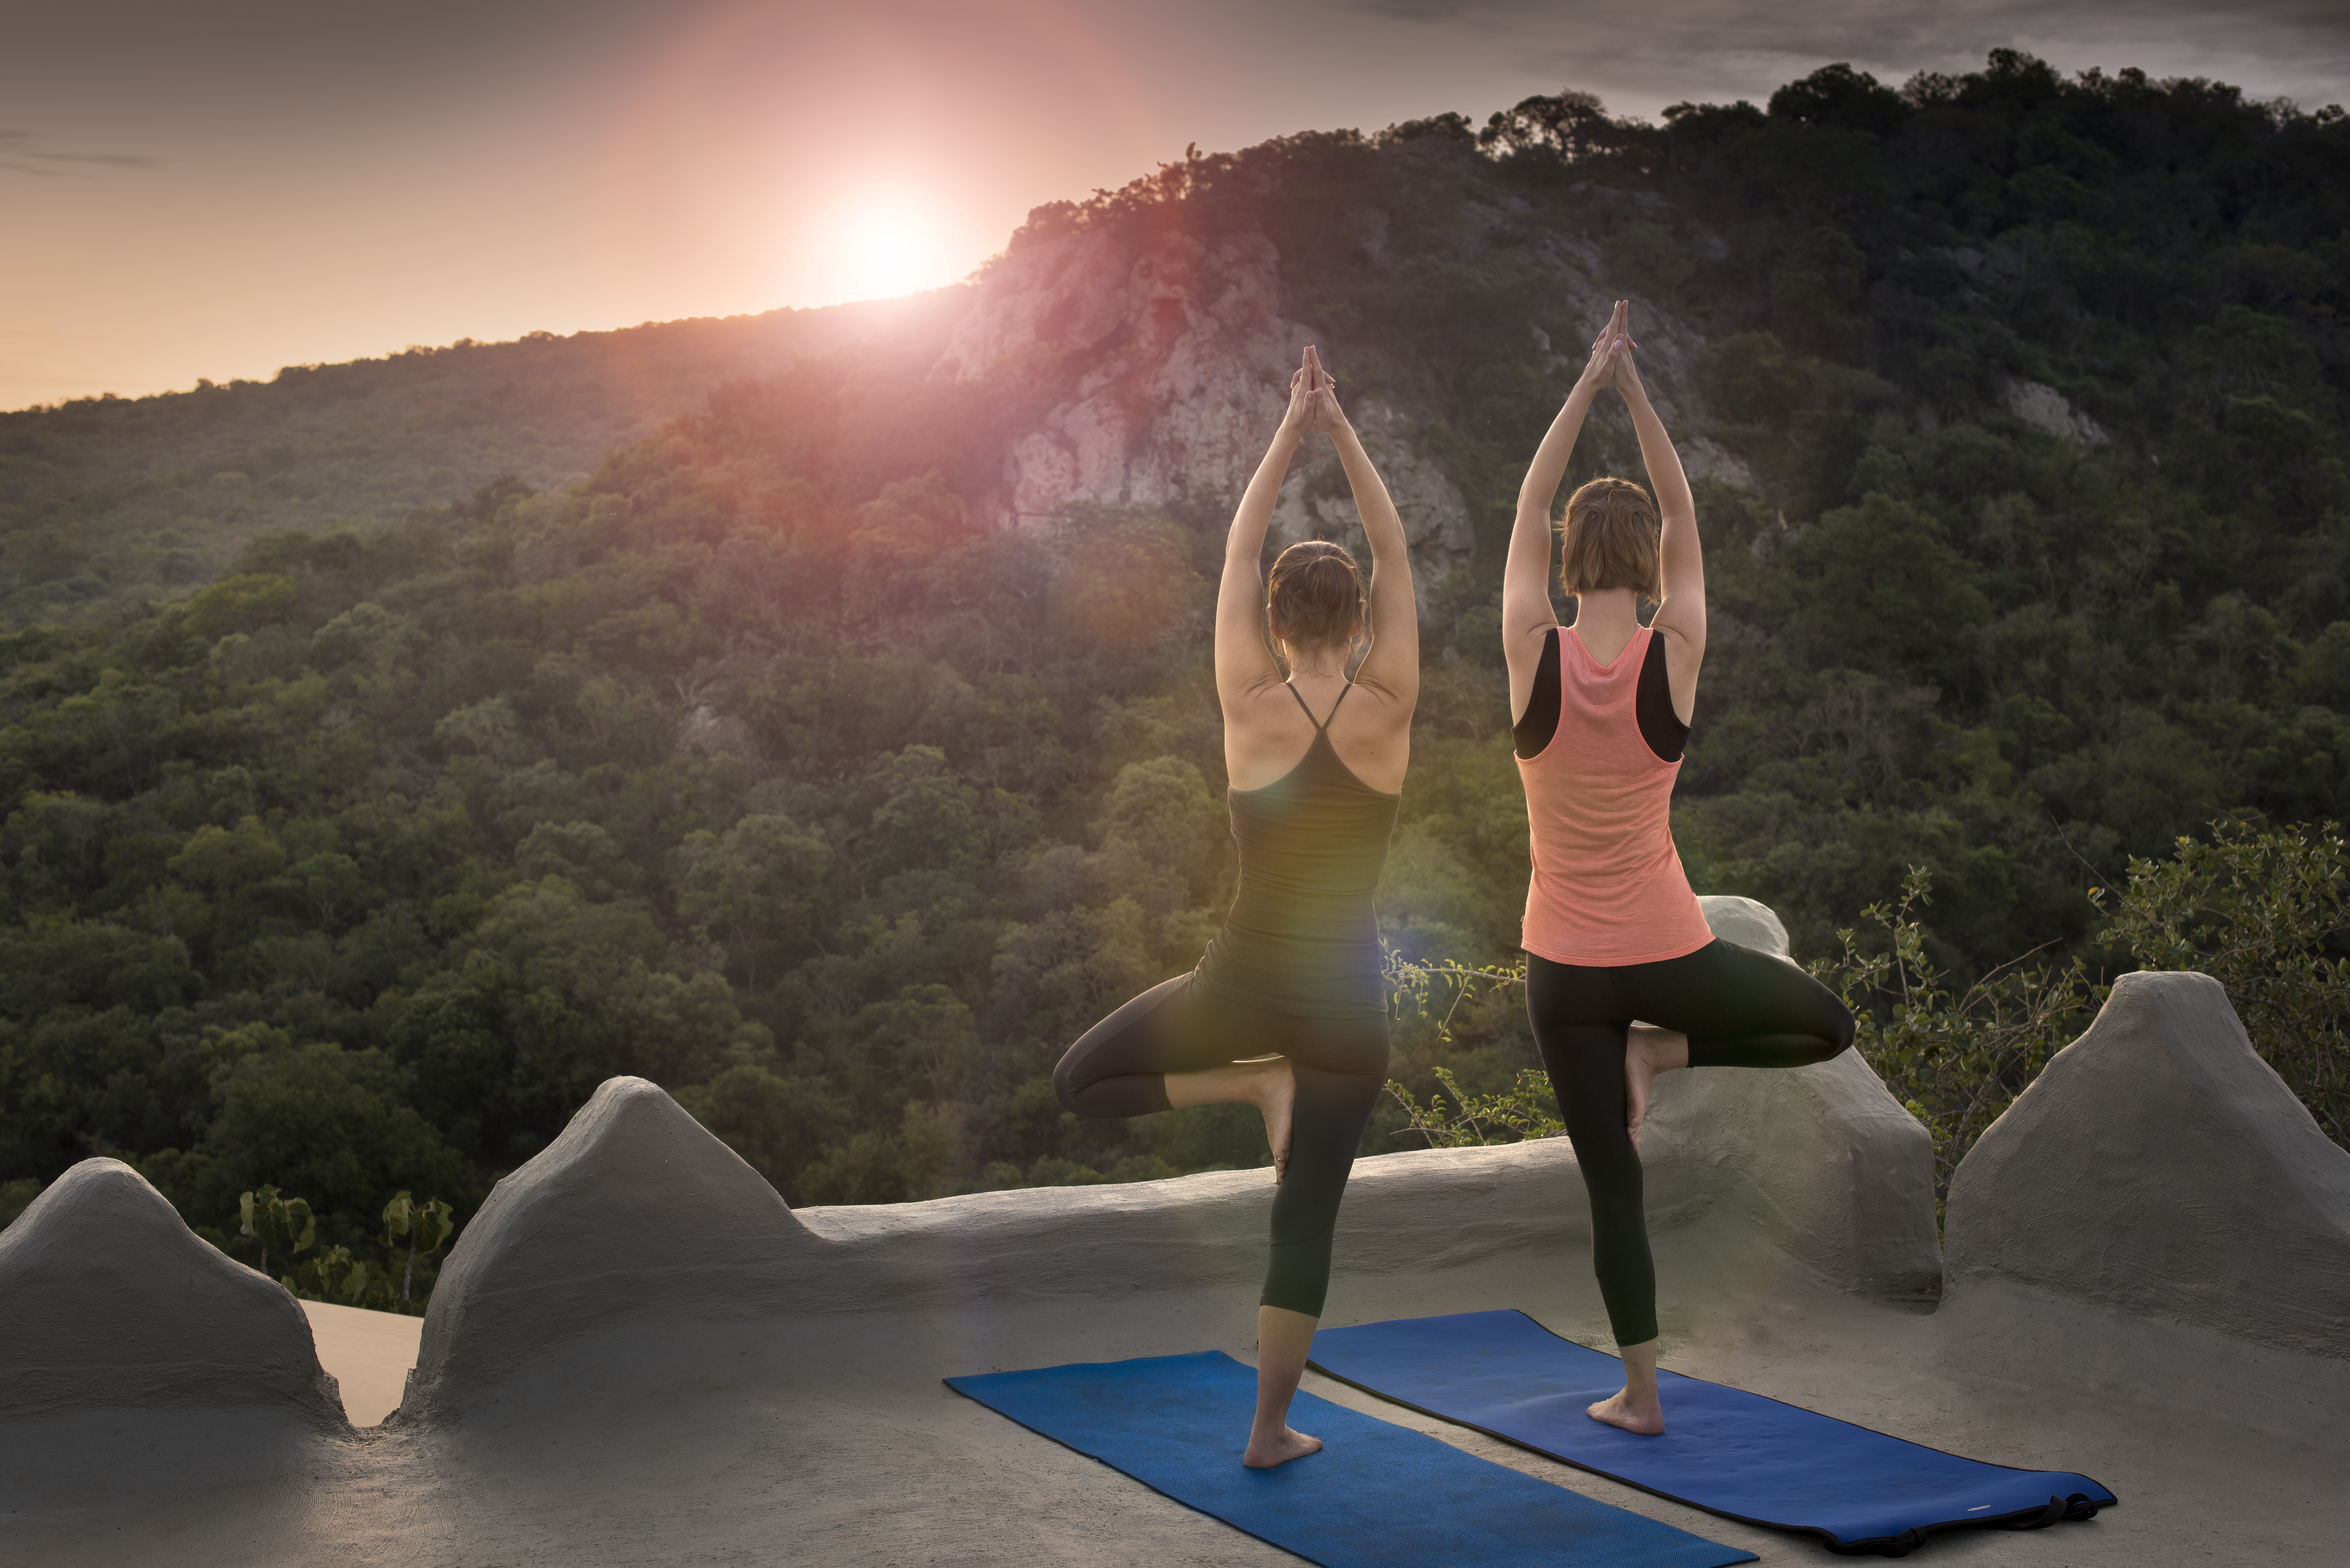 Yoga safari south africa, wellness travel